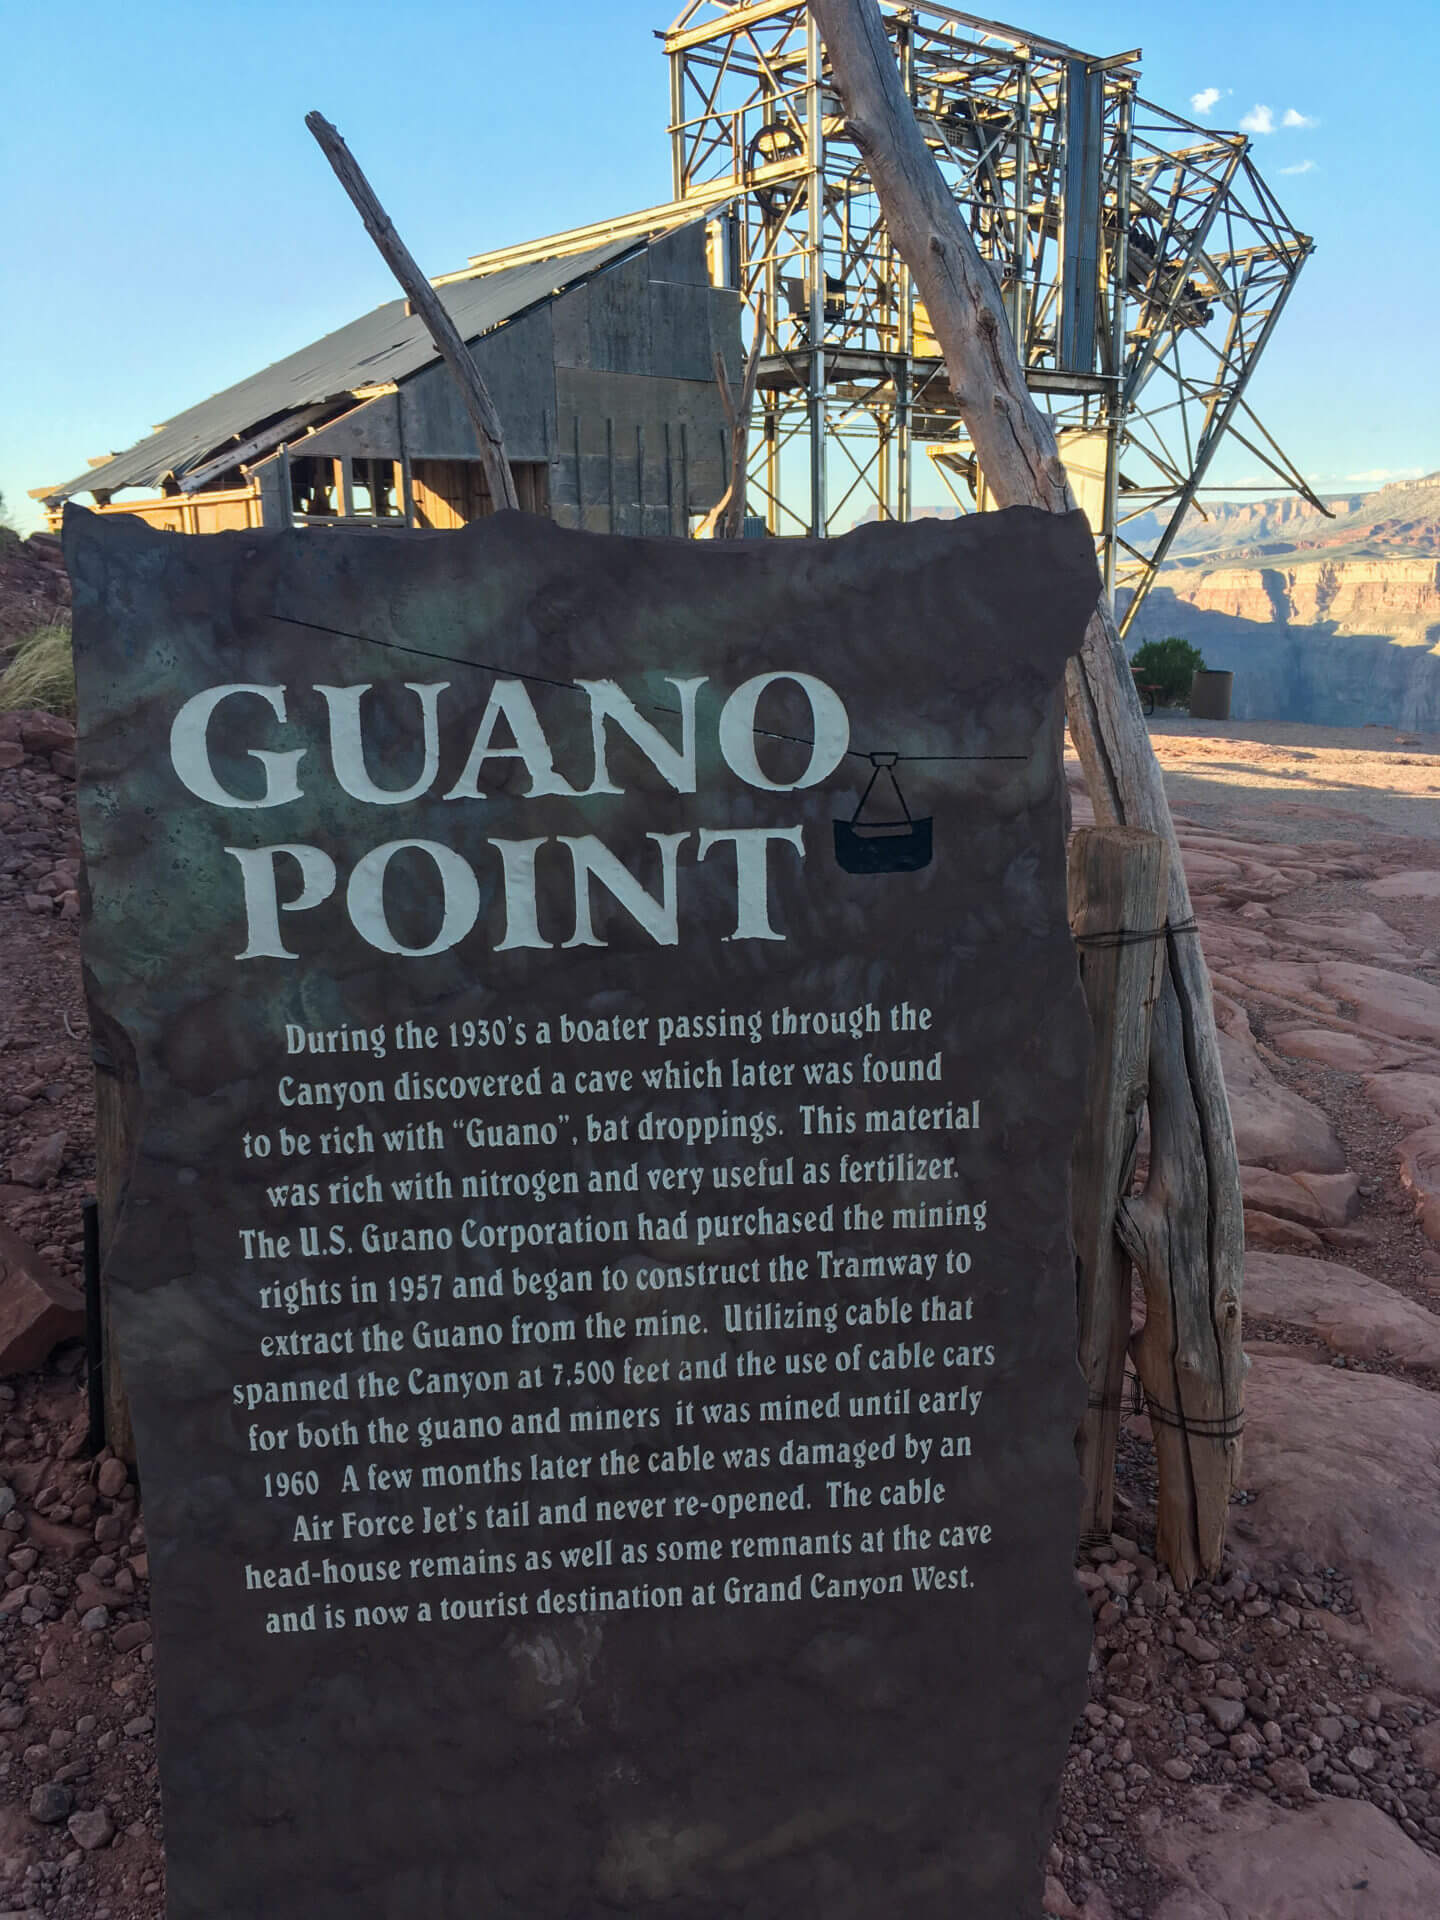 Grand Canyon West – Guano Point